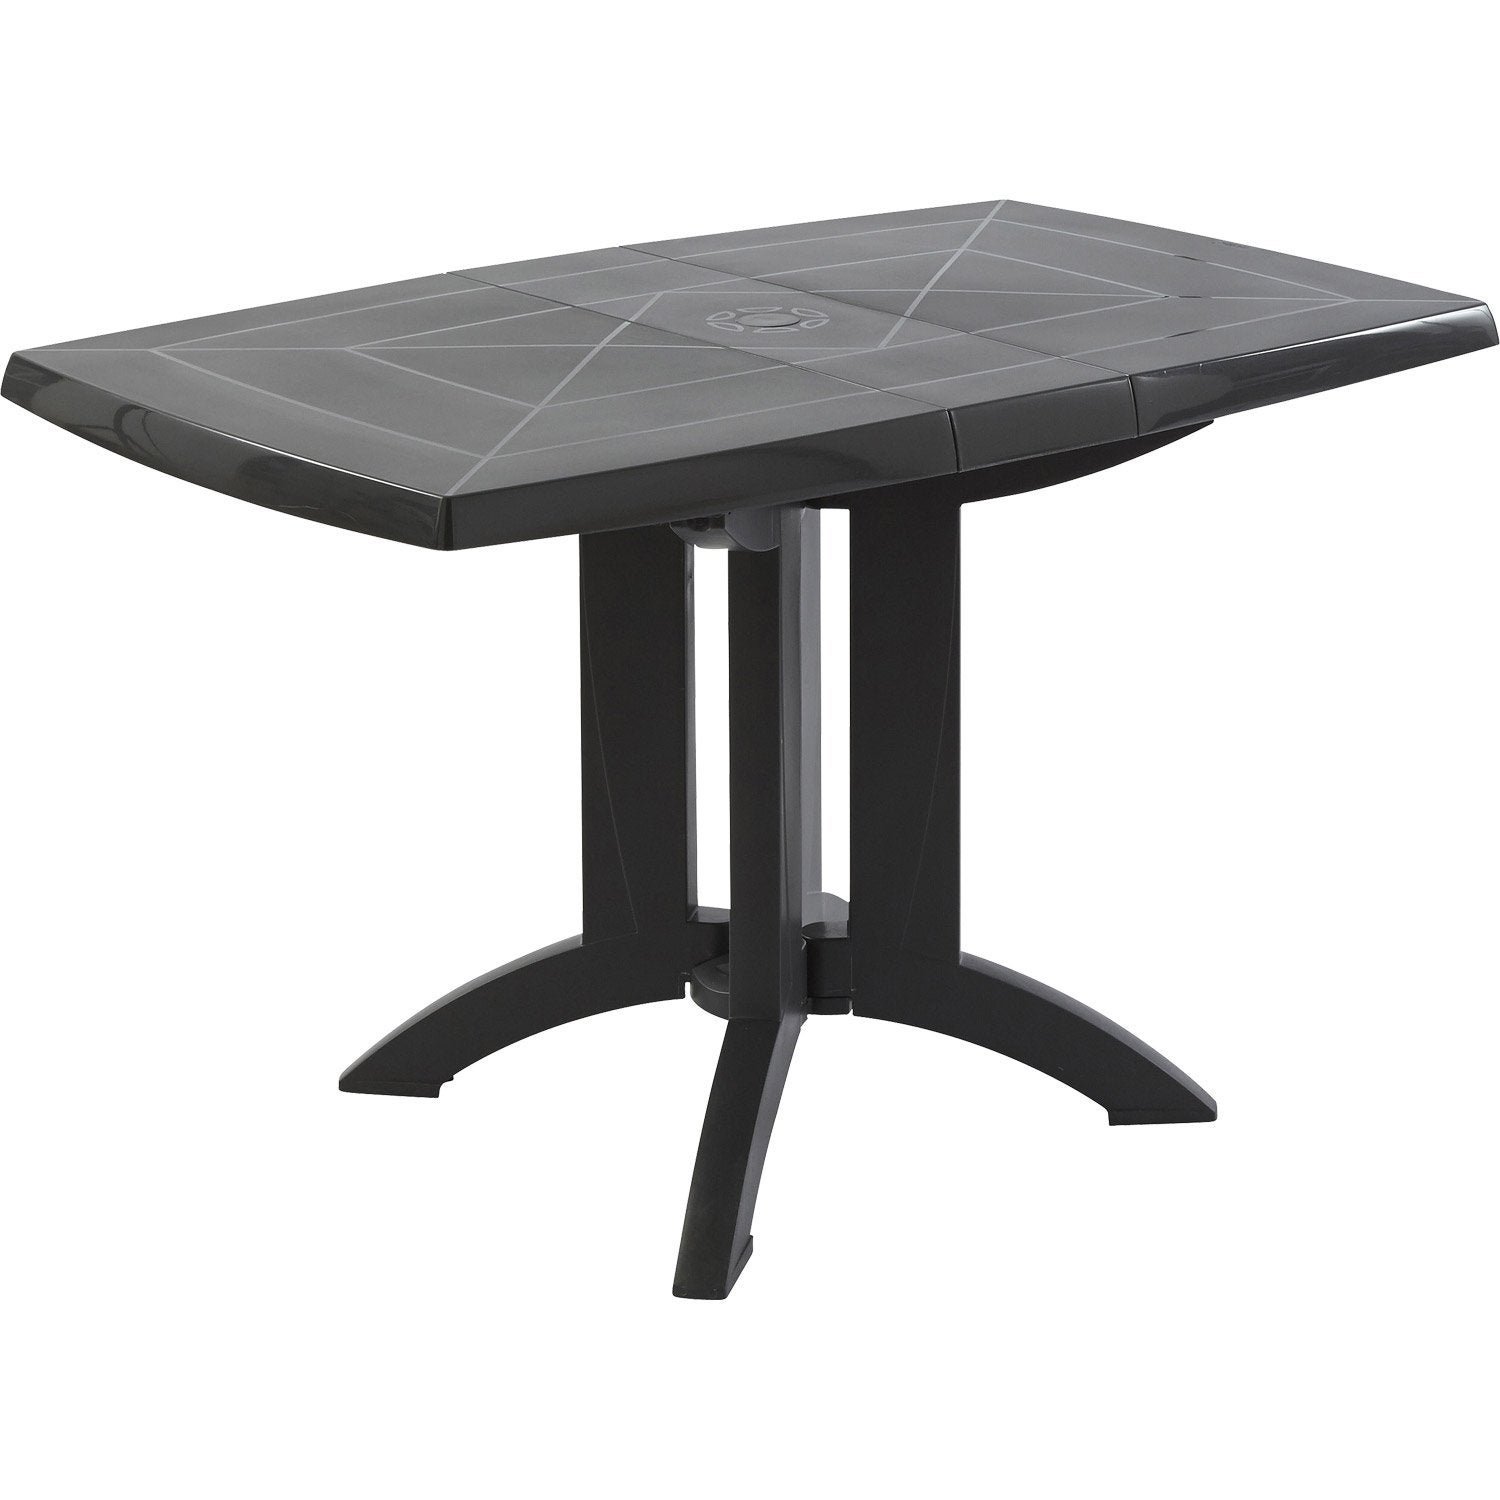 Table de jardin grosfillex v ga rectangulaire anthracite 4 - Table plastique jardin carrefour ...